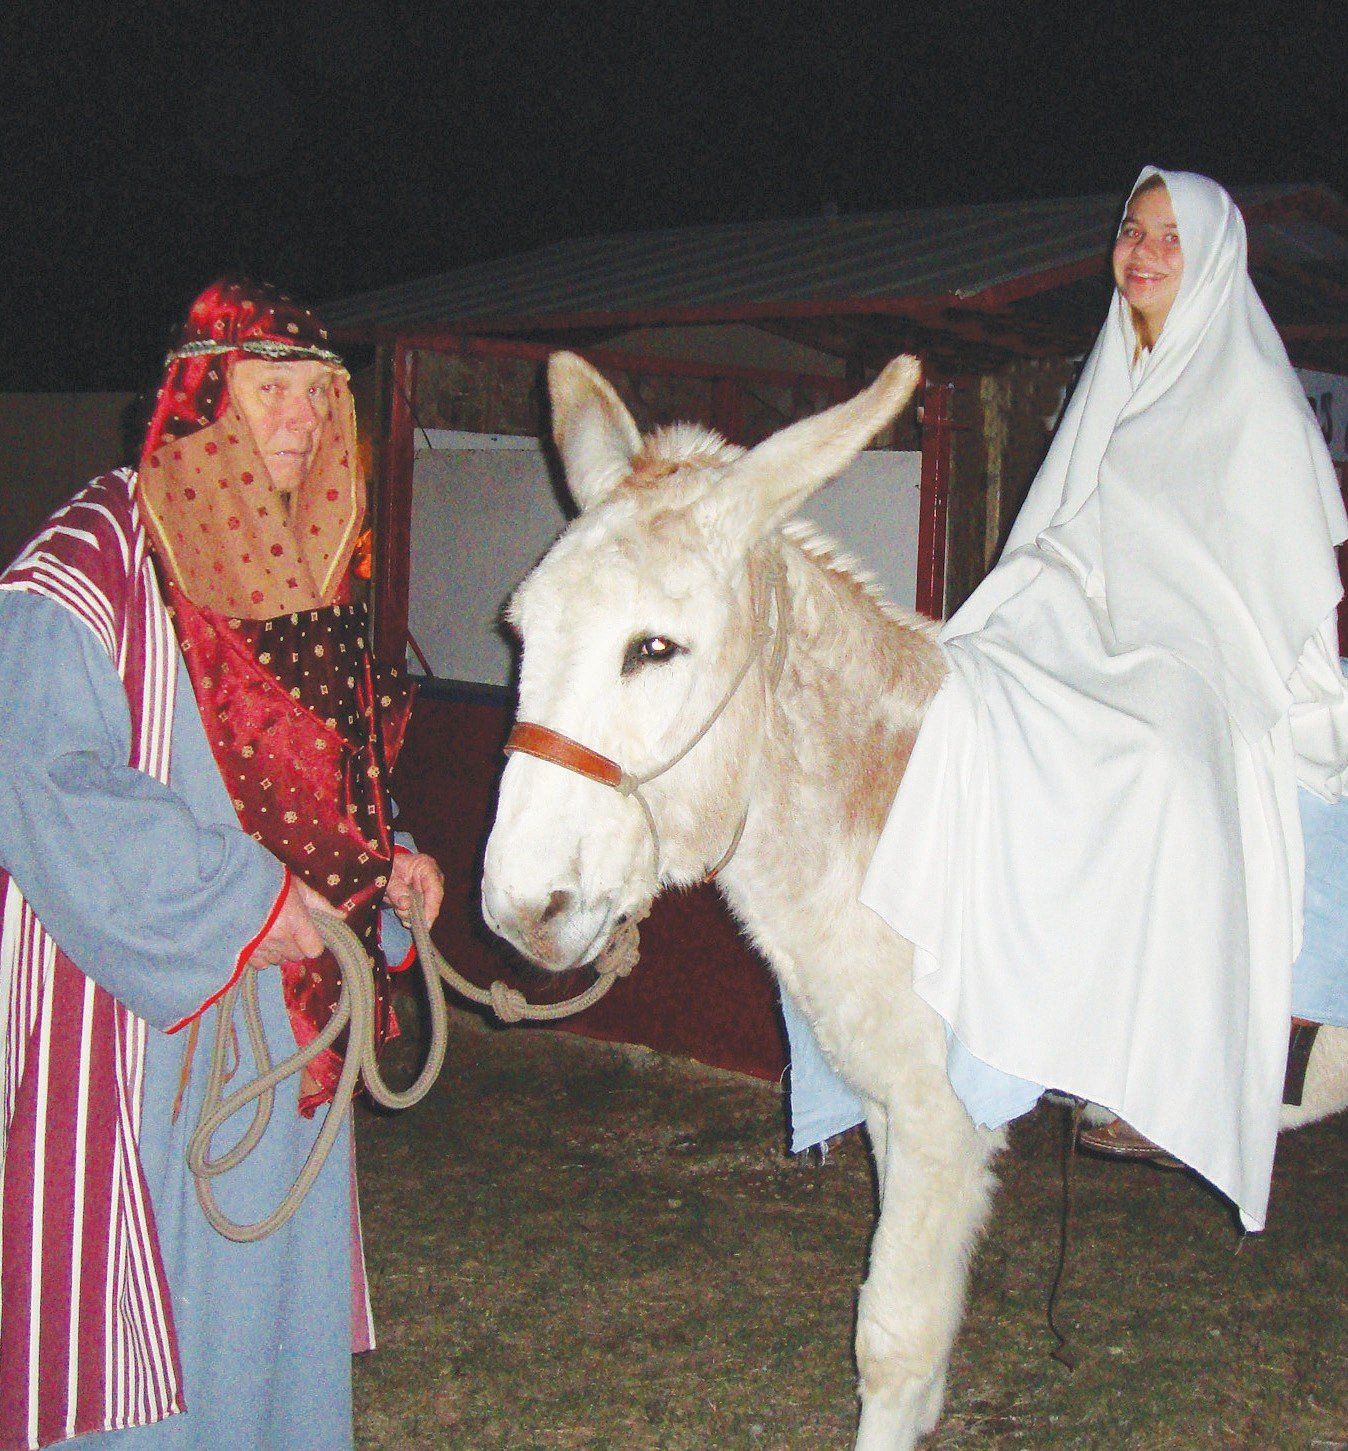 Mary and Joseph make their way to Bethlehem during a scene portrayed at the Christmas Village last year. It will be presented this Friday, Saturday and Sunday at the Poteet Strawberry Festival grounds.